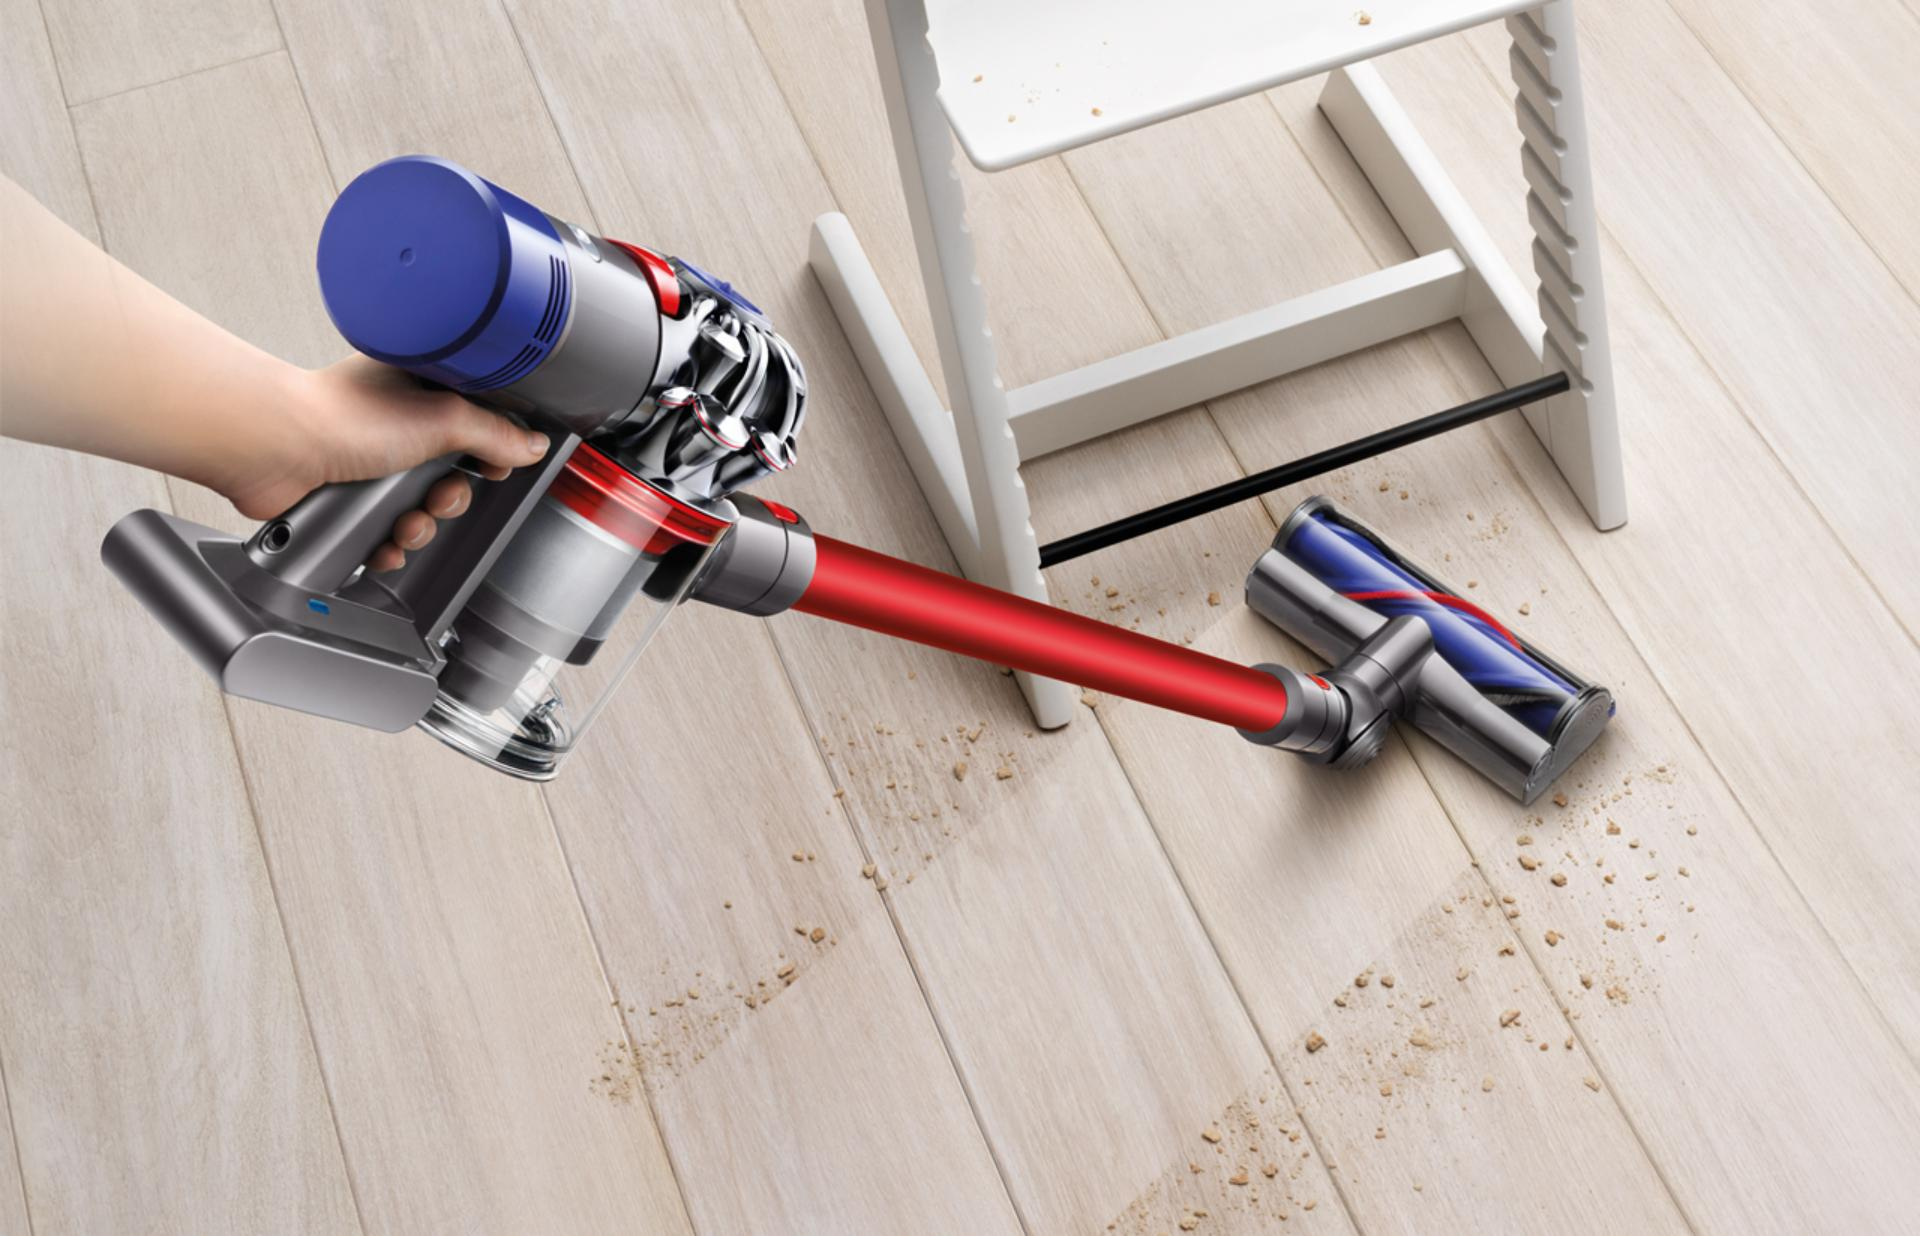 Dyson v7 being used on flooring